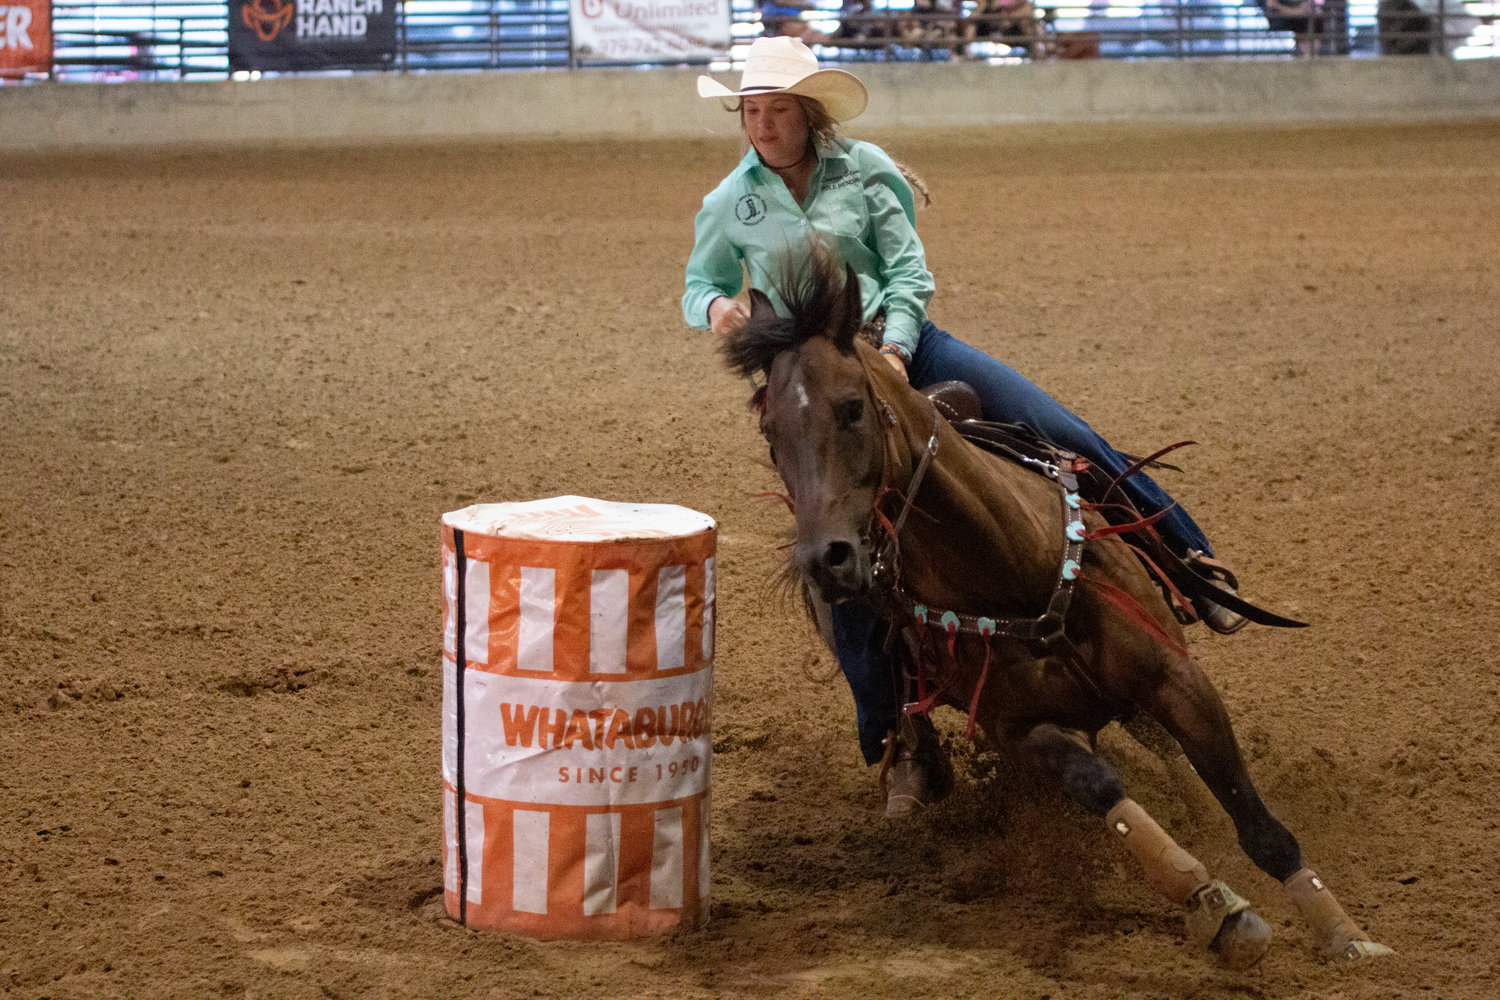 The Texas Youth Rodeo Association finals are at J.B. Wells Arena this week with young cowboys and cowgirls competing to finish out the summer on top. Pictured is Harwood's Lauren Stone who is scheduled to perform in three different events.